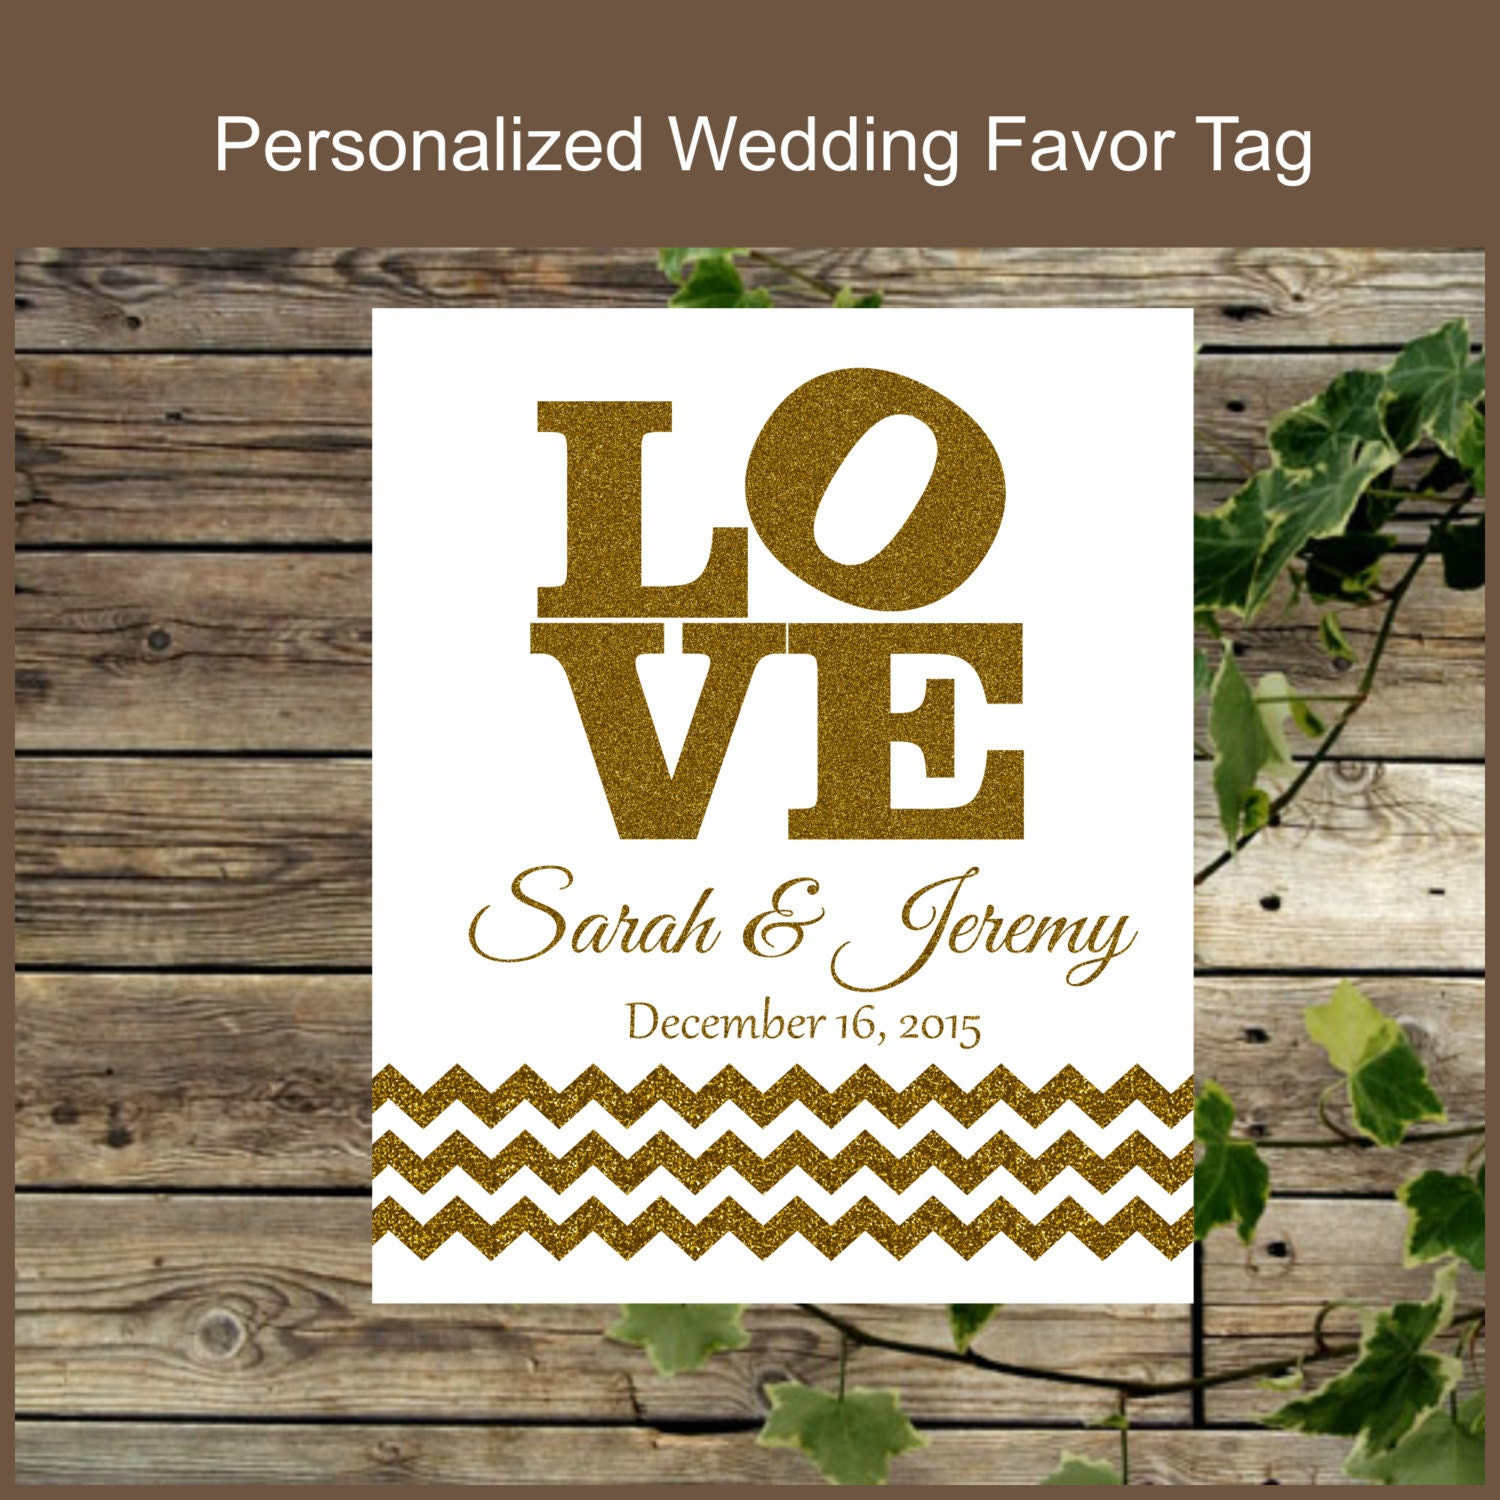 Wedding Favor Tags Custom : Printable Wedding Favor Tags Personalized Love White and Gold